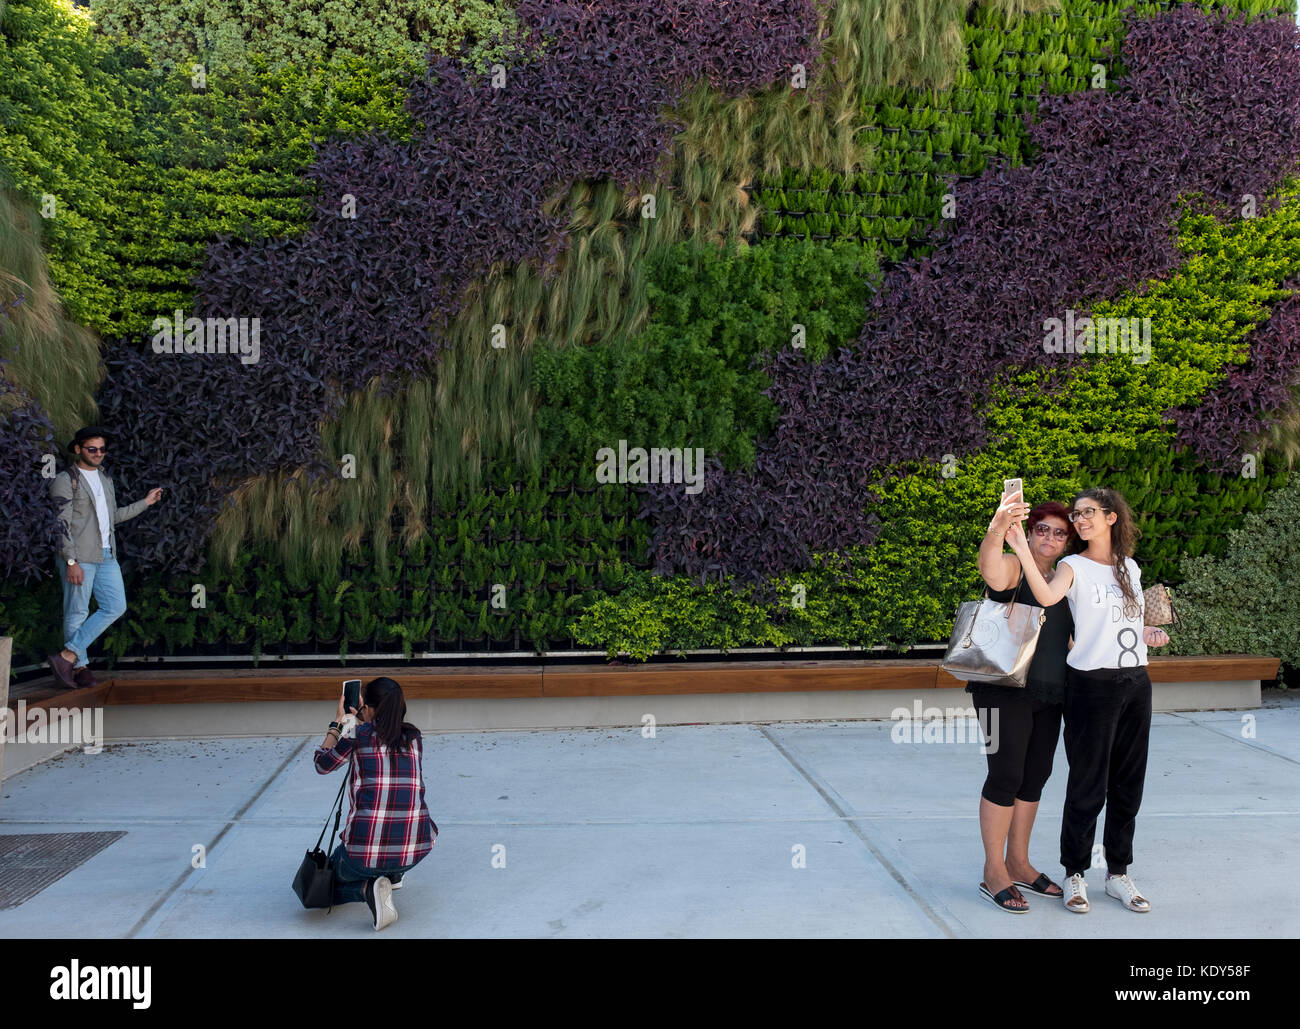 The Green Living Wall in Paphos old town, Cyprus. The vertical garden was created by garden designer Thanasis Evripidou - Stock Image